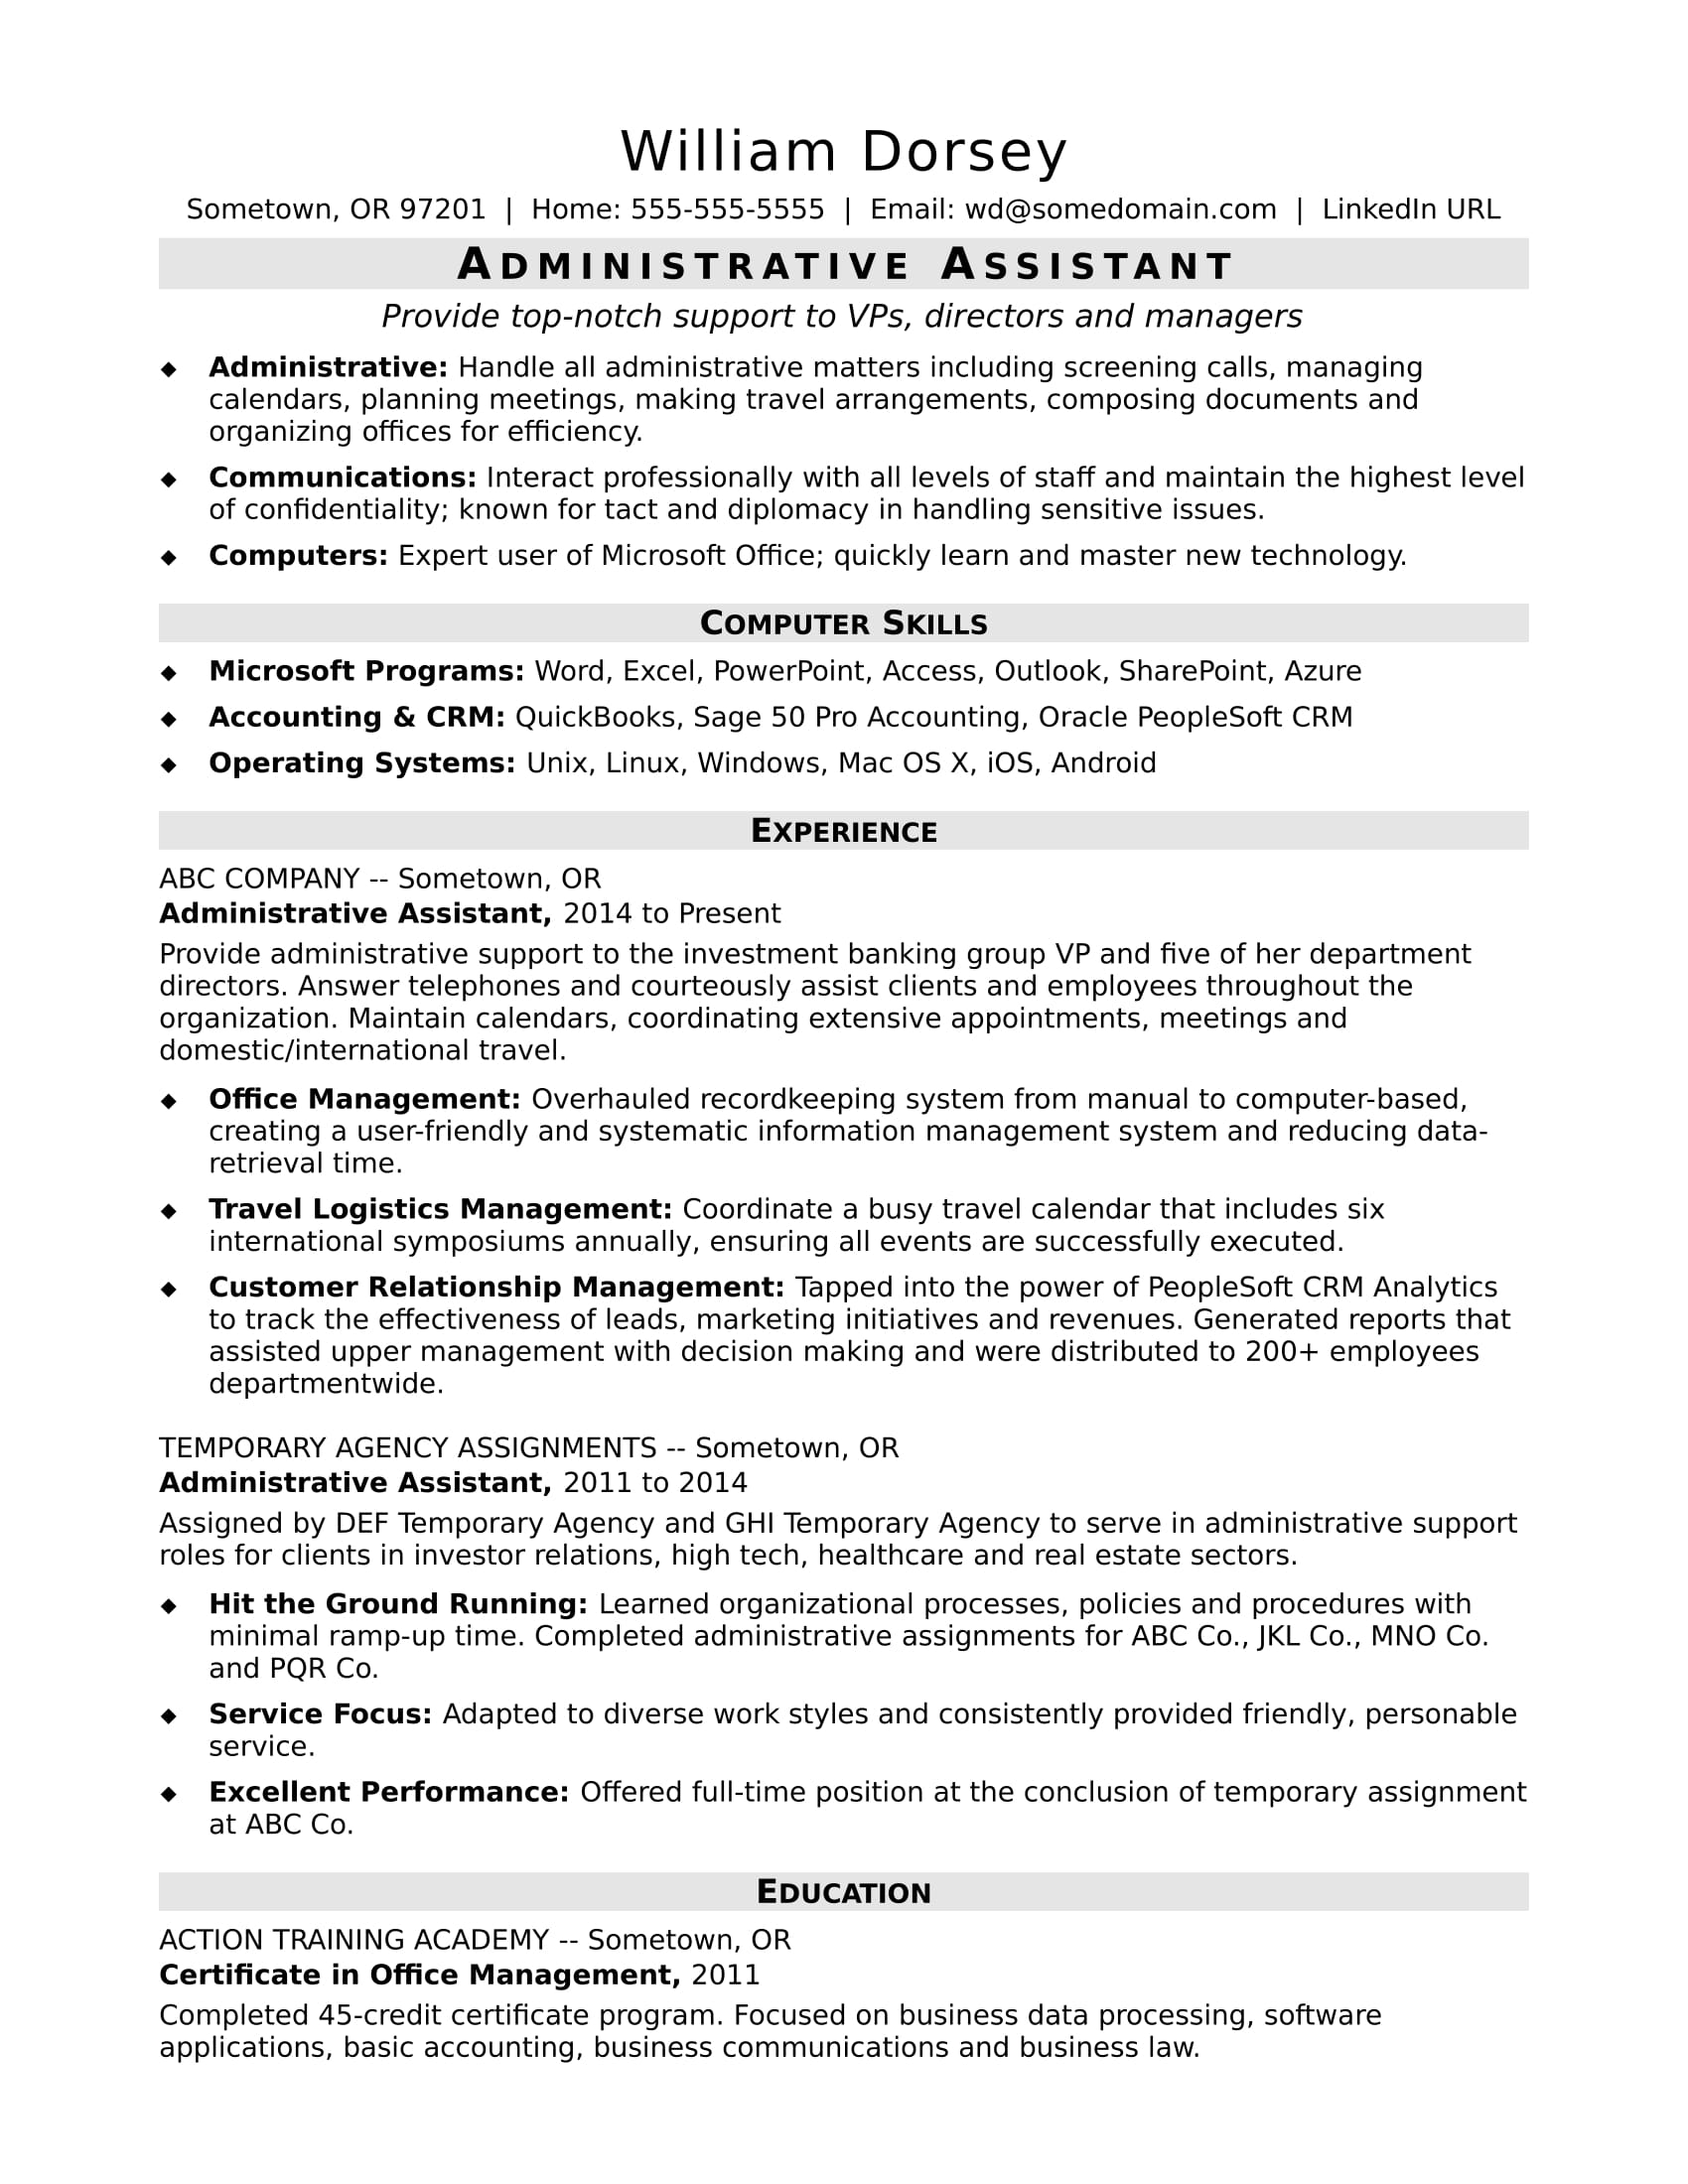 midlevel administrative assistant resume sample monster accounting high school Resume Accounting Administrative Assistant Resume